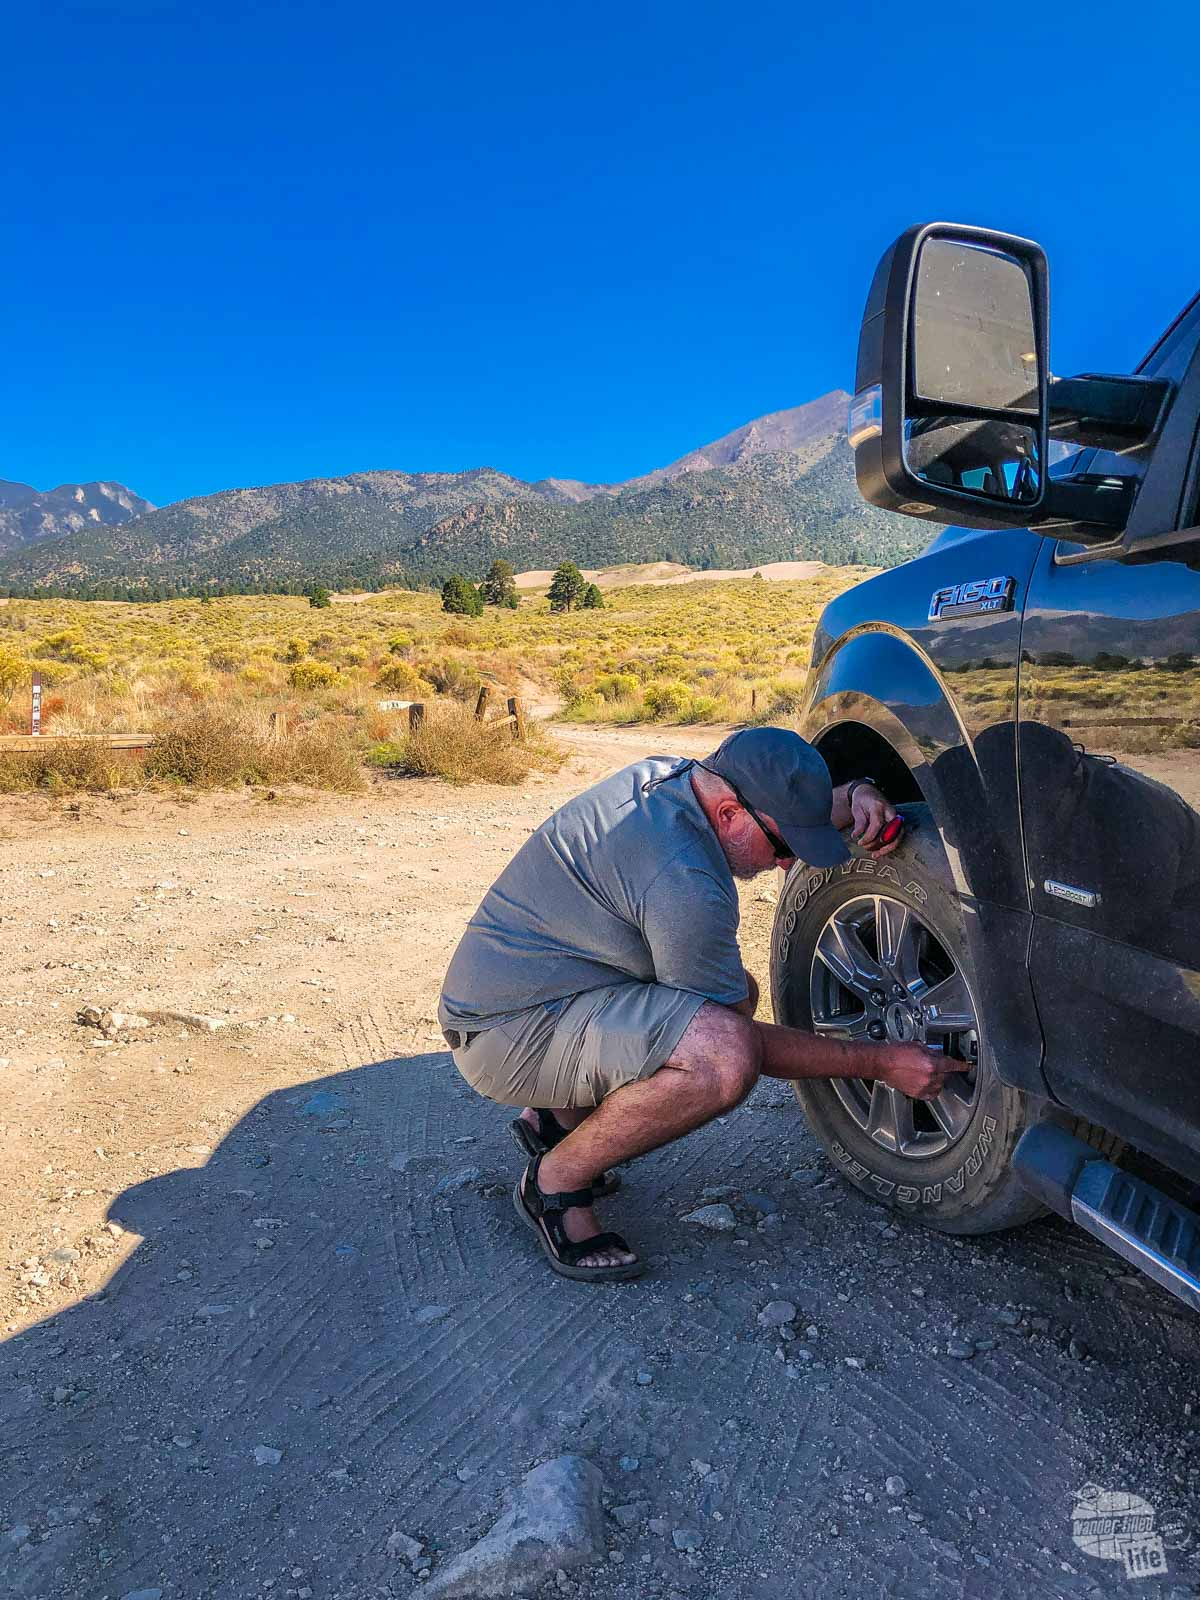 Grant airing down the tires to avoid getting stuck in the sand... It wasn't necessary for this drive.